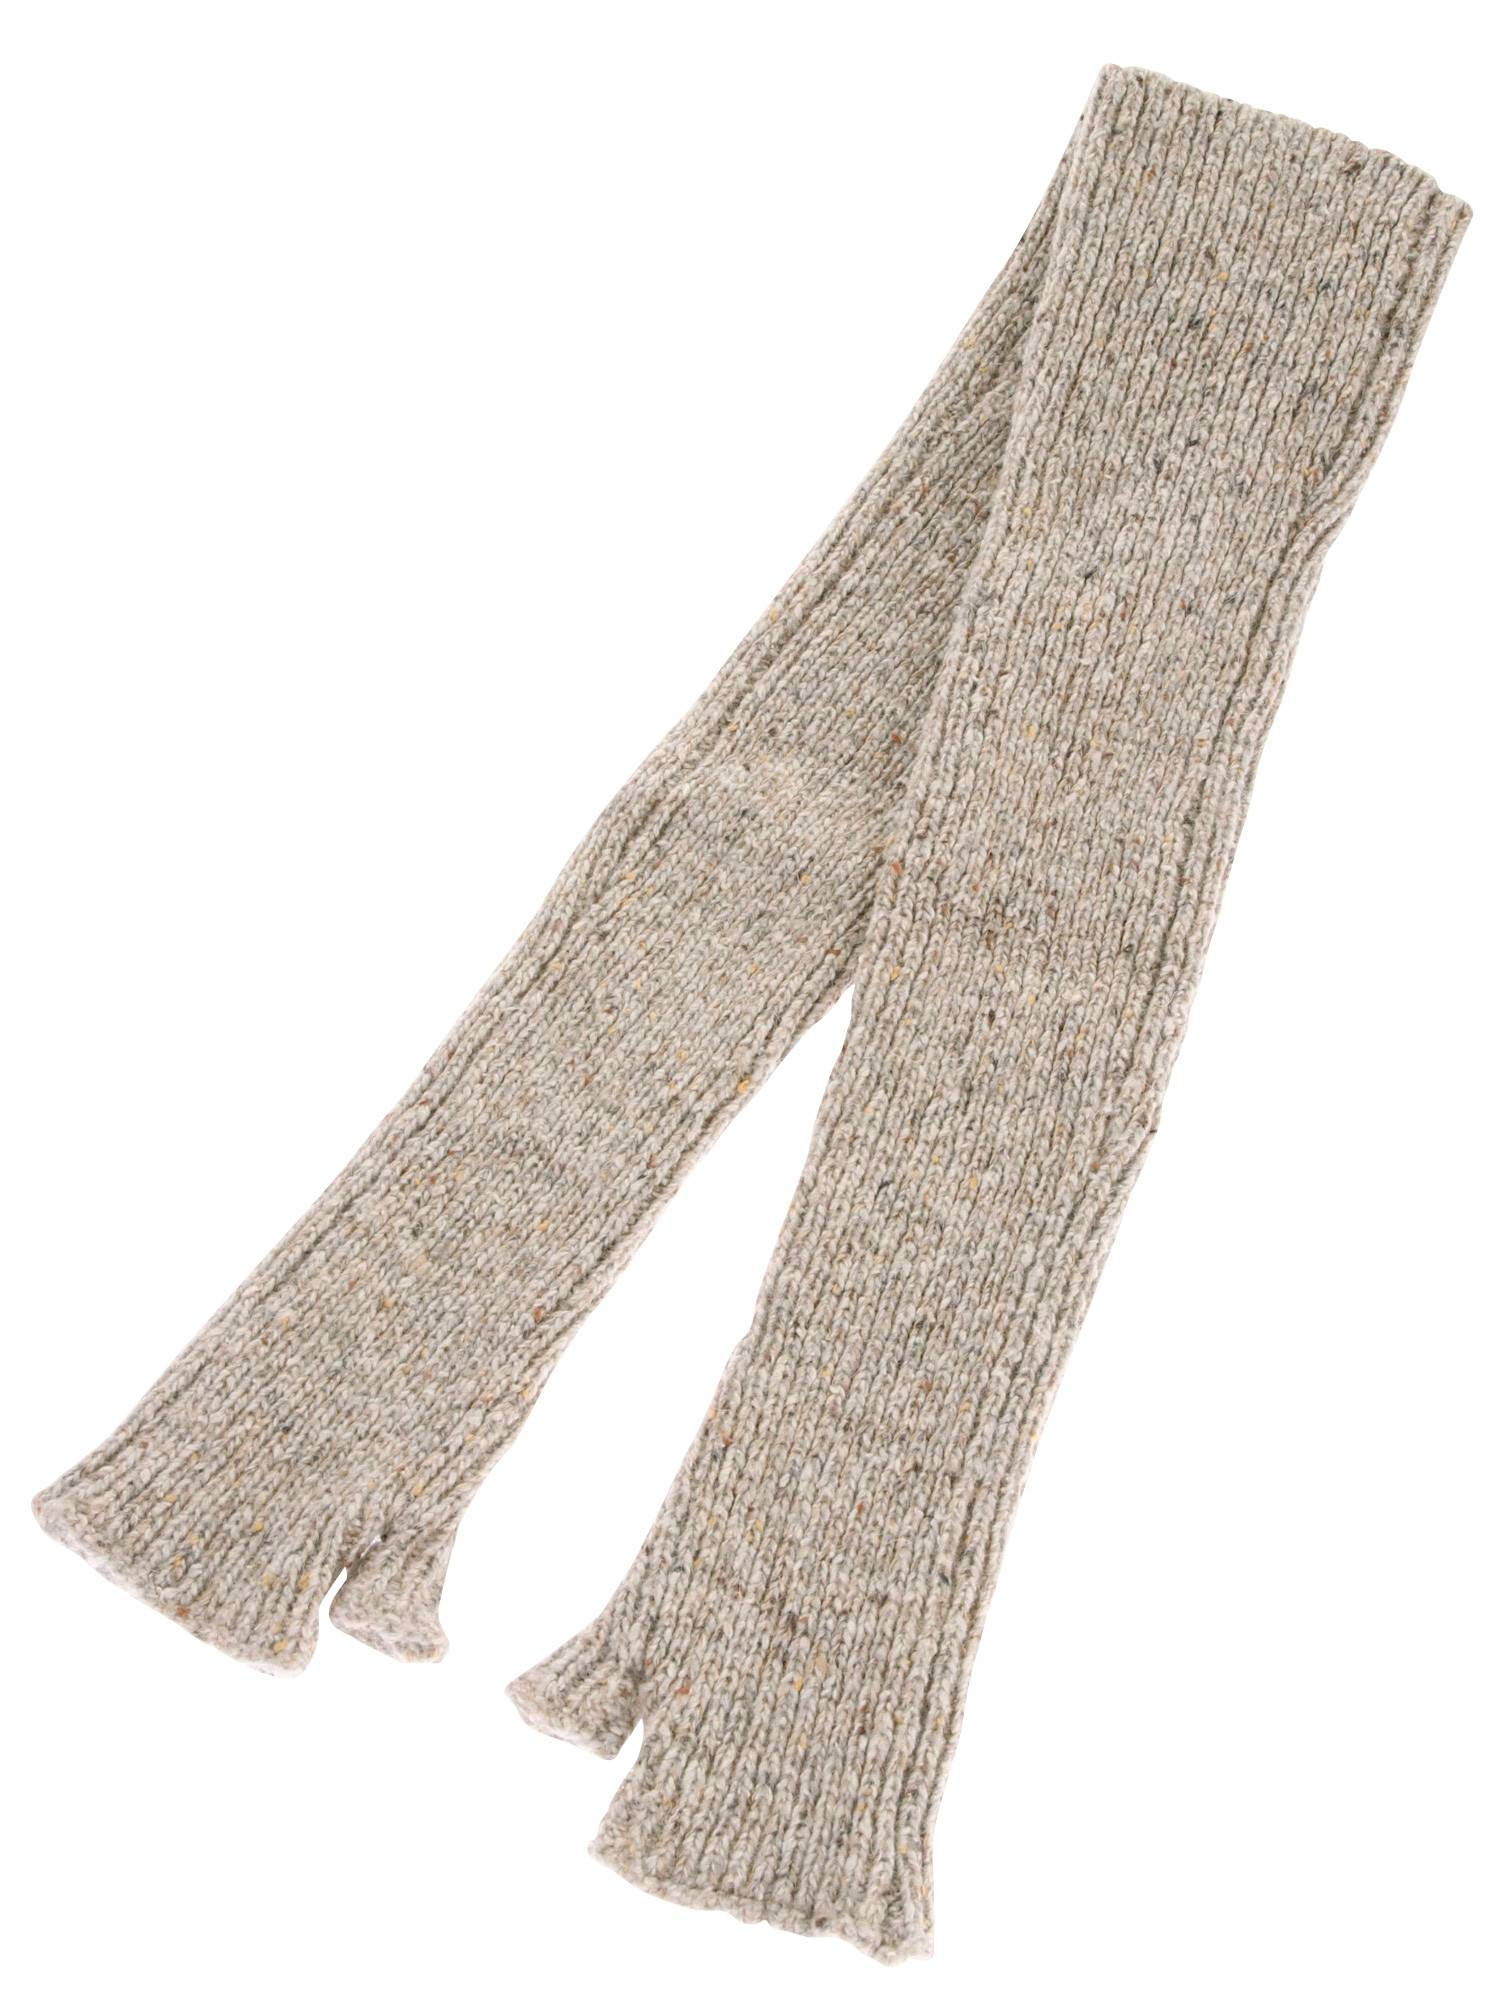 NEP mixed knit arm warmers